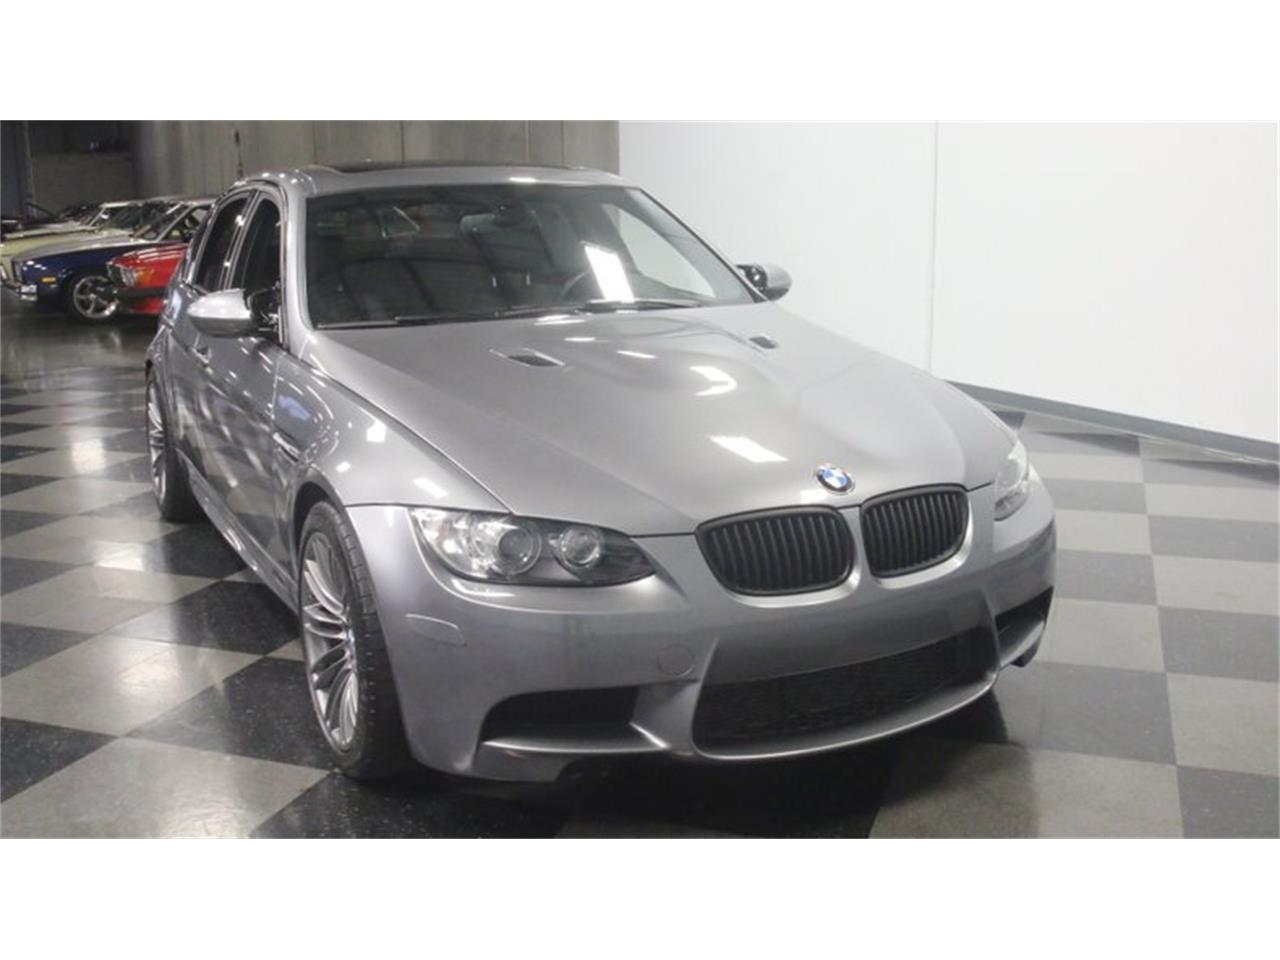 2010 BMW M3 for sale in Lithia Springs, GA – photo 18